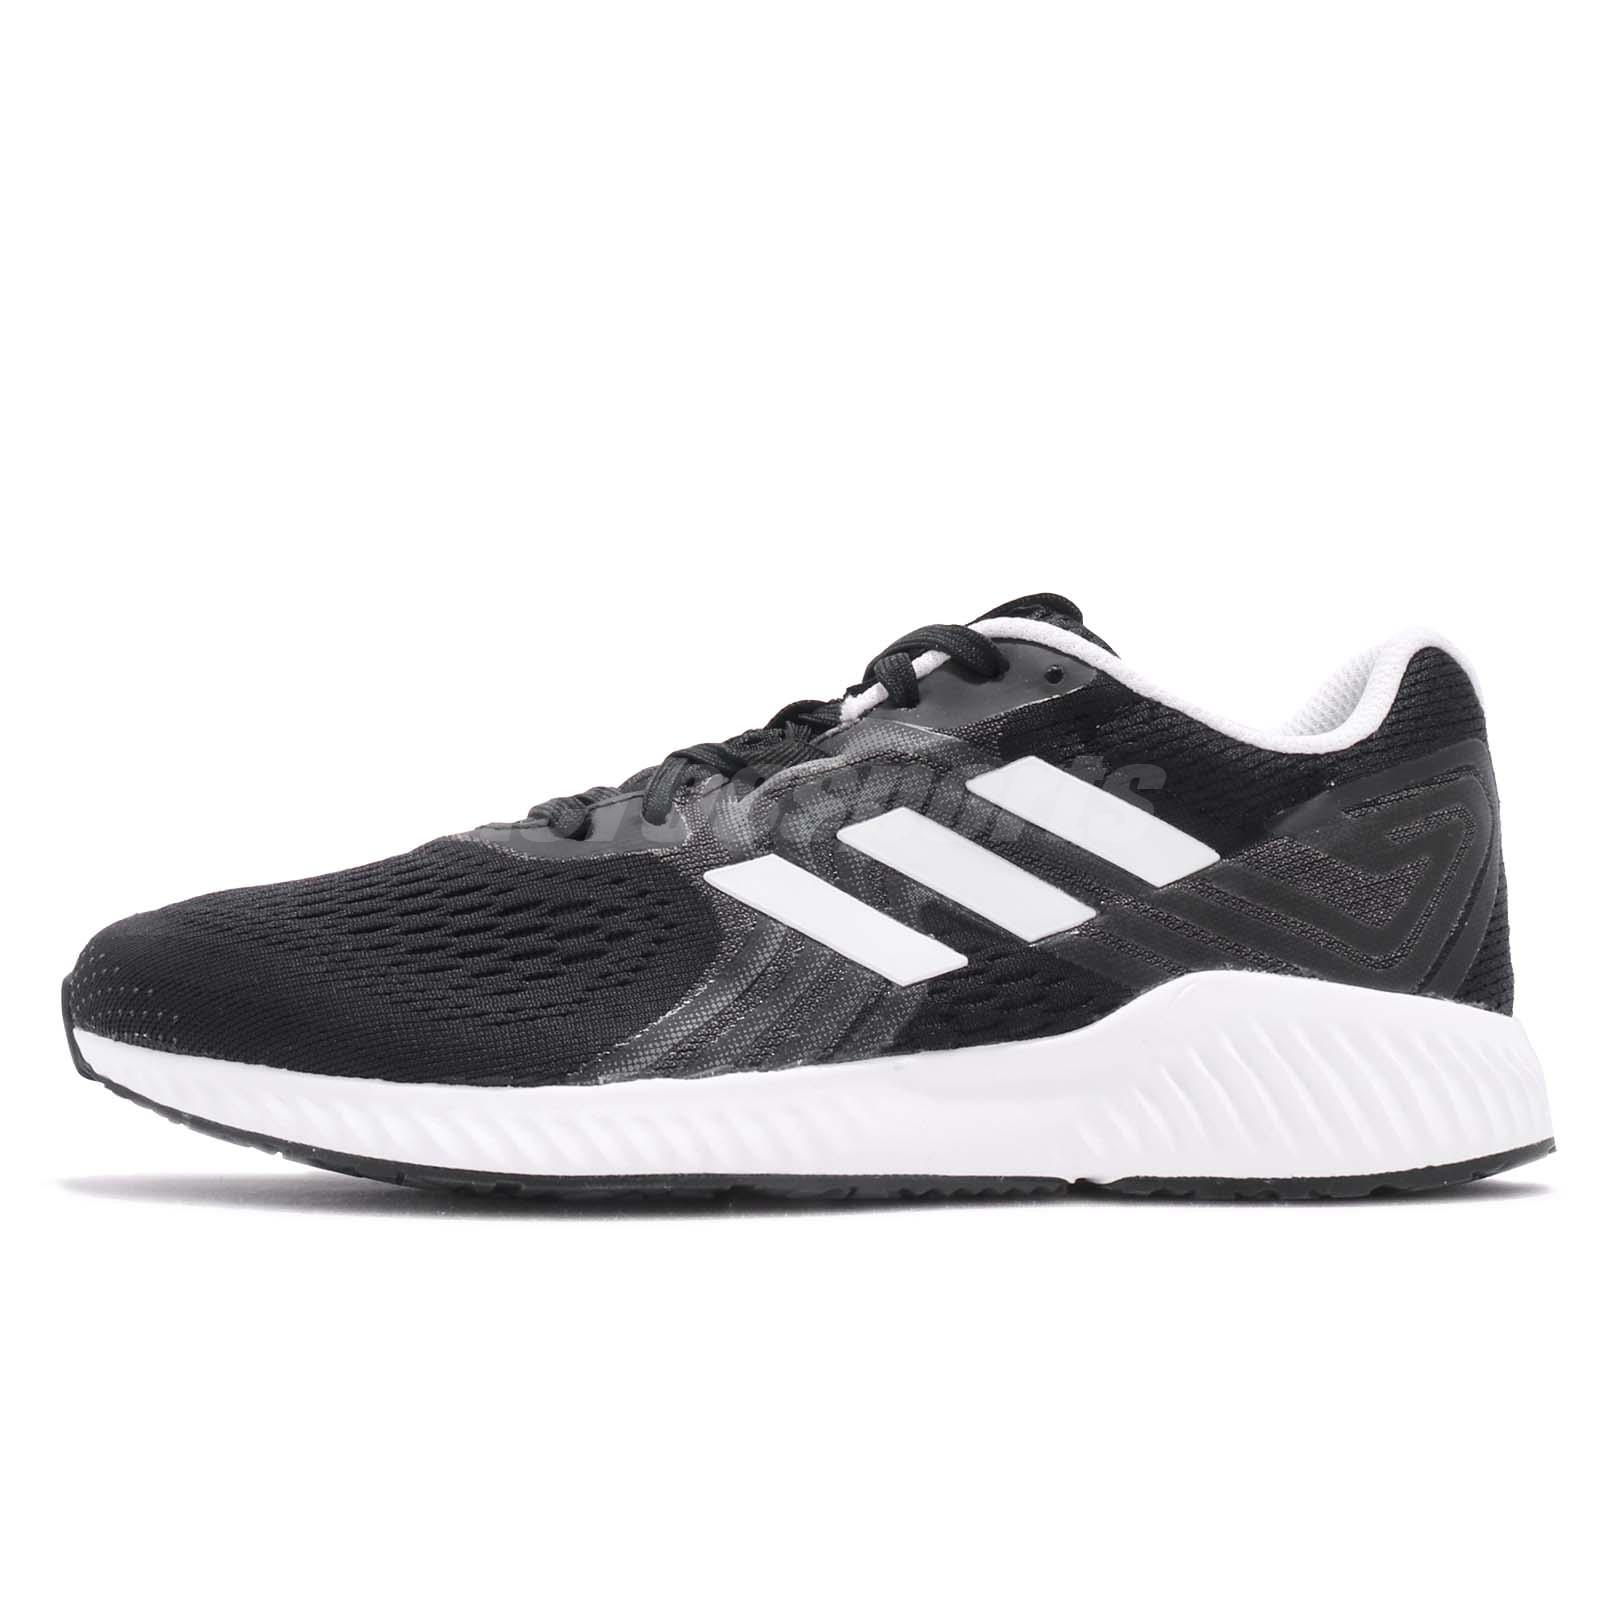 Details about adidas AeroBOUNCE 2 W Black White Women Running Training  Shoes Sneakers B96345